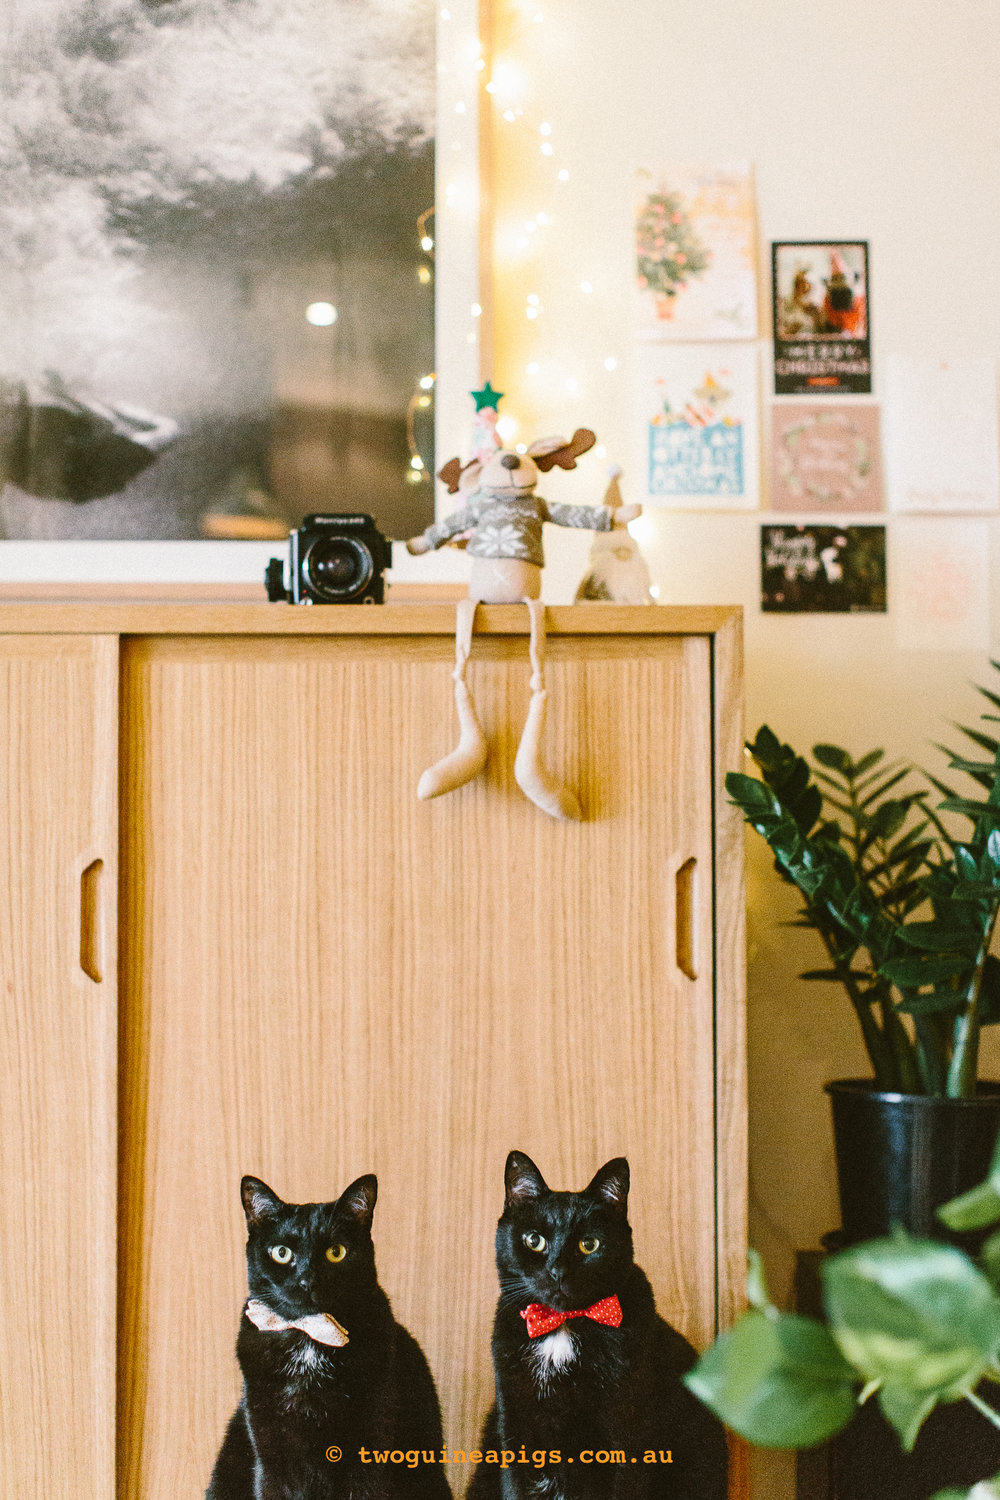 twoguineapigs_pet_photography_blackcats_interior